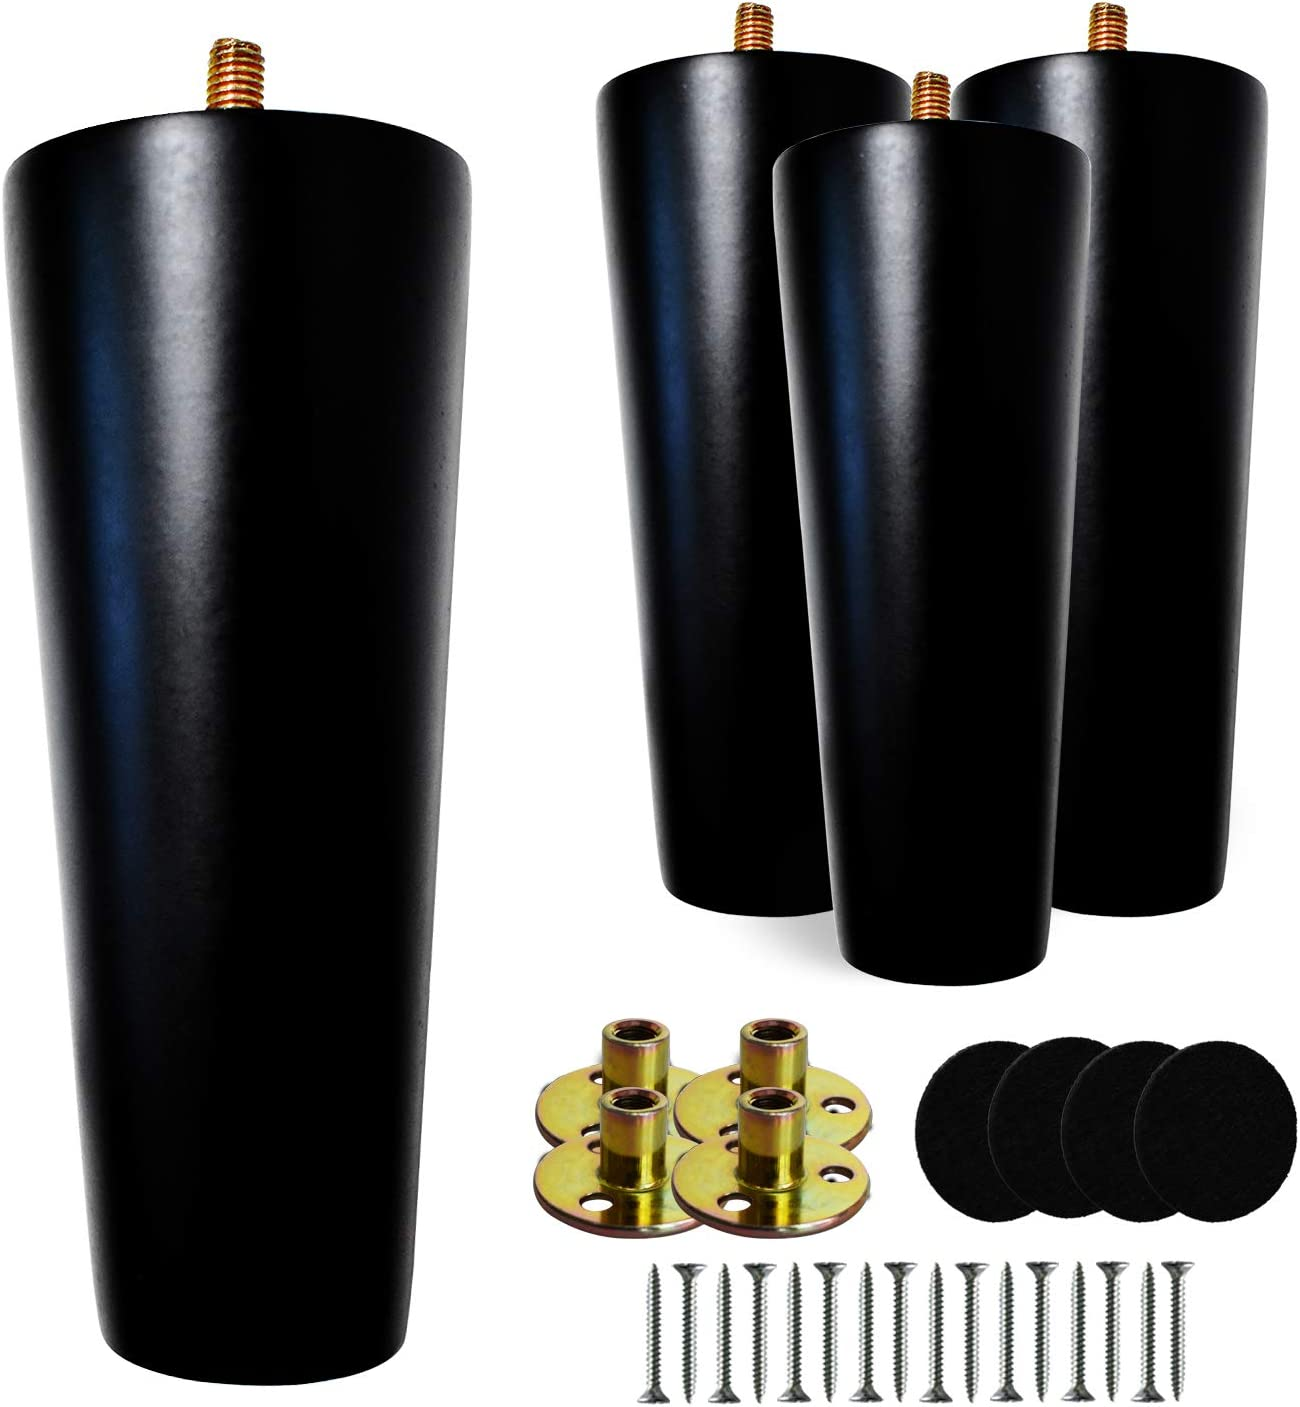 6Inch Solid Wooden Furniture Legs, Black Furniture Legs for Sofa and Cabinet Feet, 100% Wood Replacement Legs for Ottoman Sofa Coffee Table TV Stand,Set of 4 Wood Legs with Mounting Plate Screw